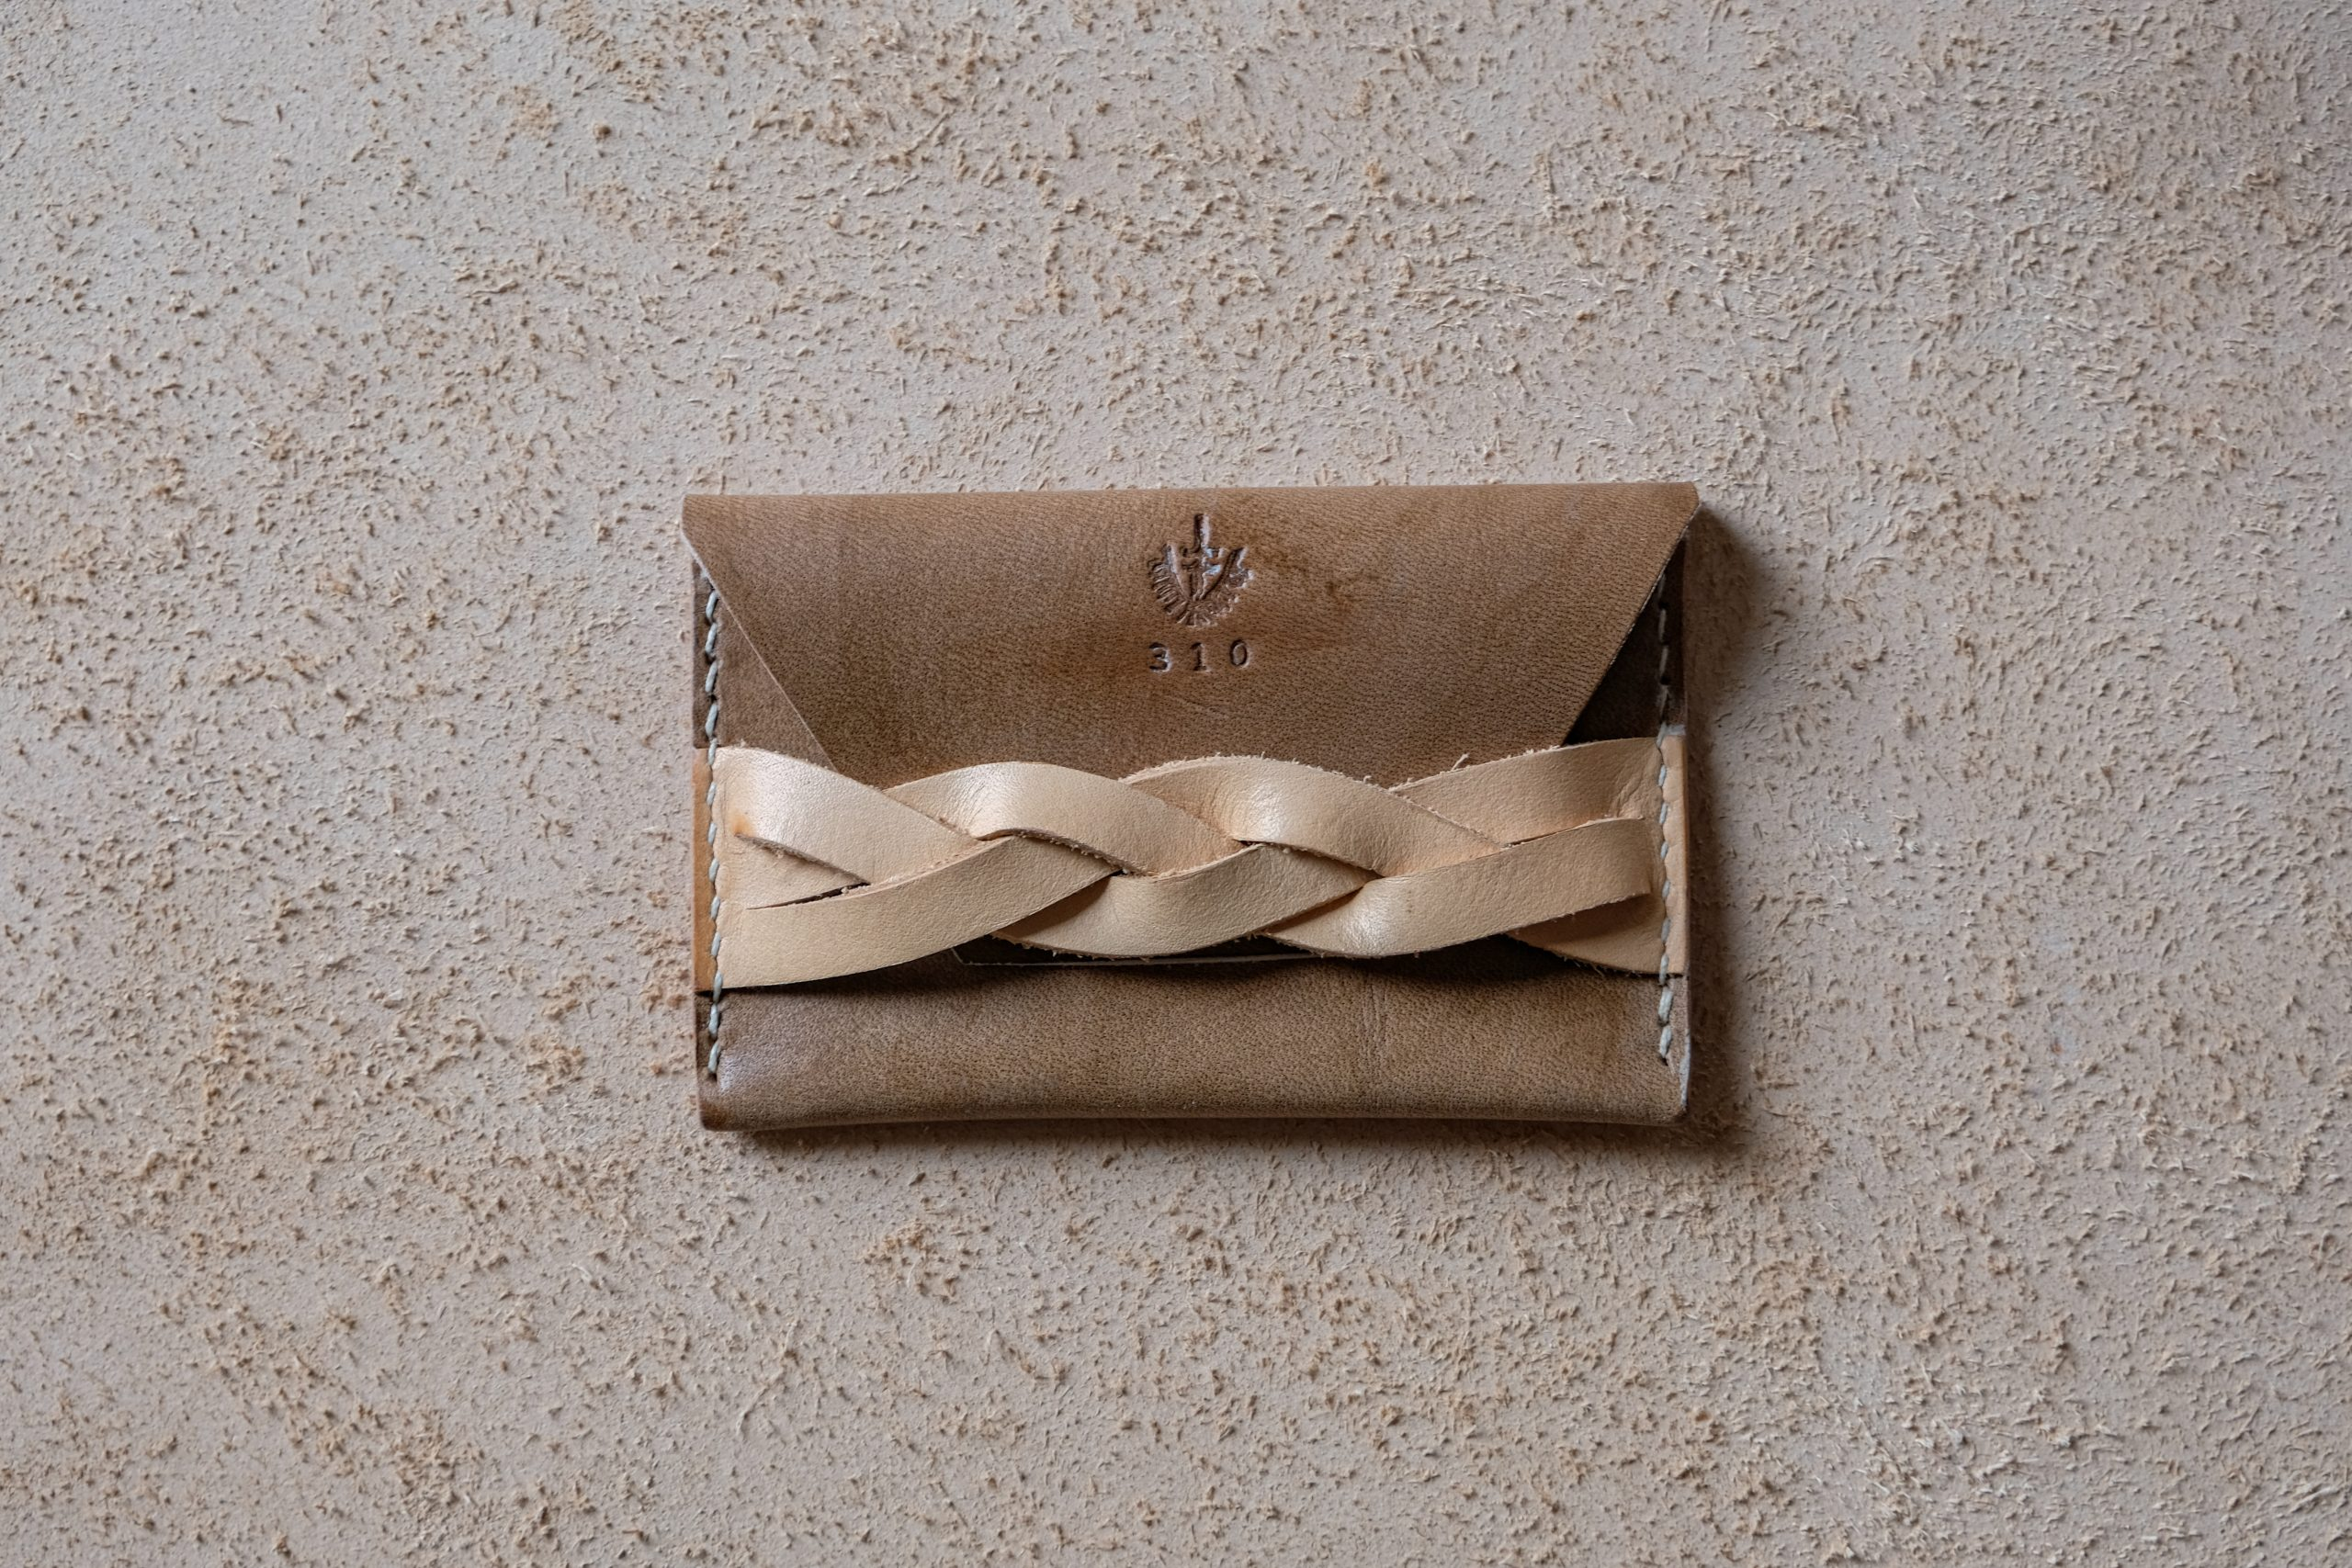 lerif designs leather magic braid cardholder walnut and natural on beige background